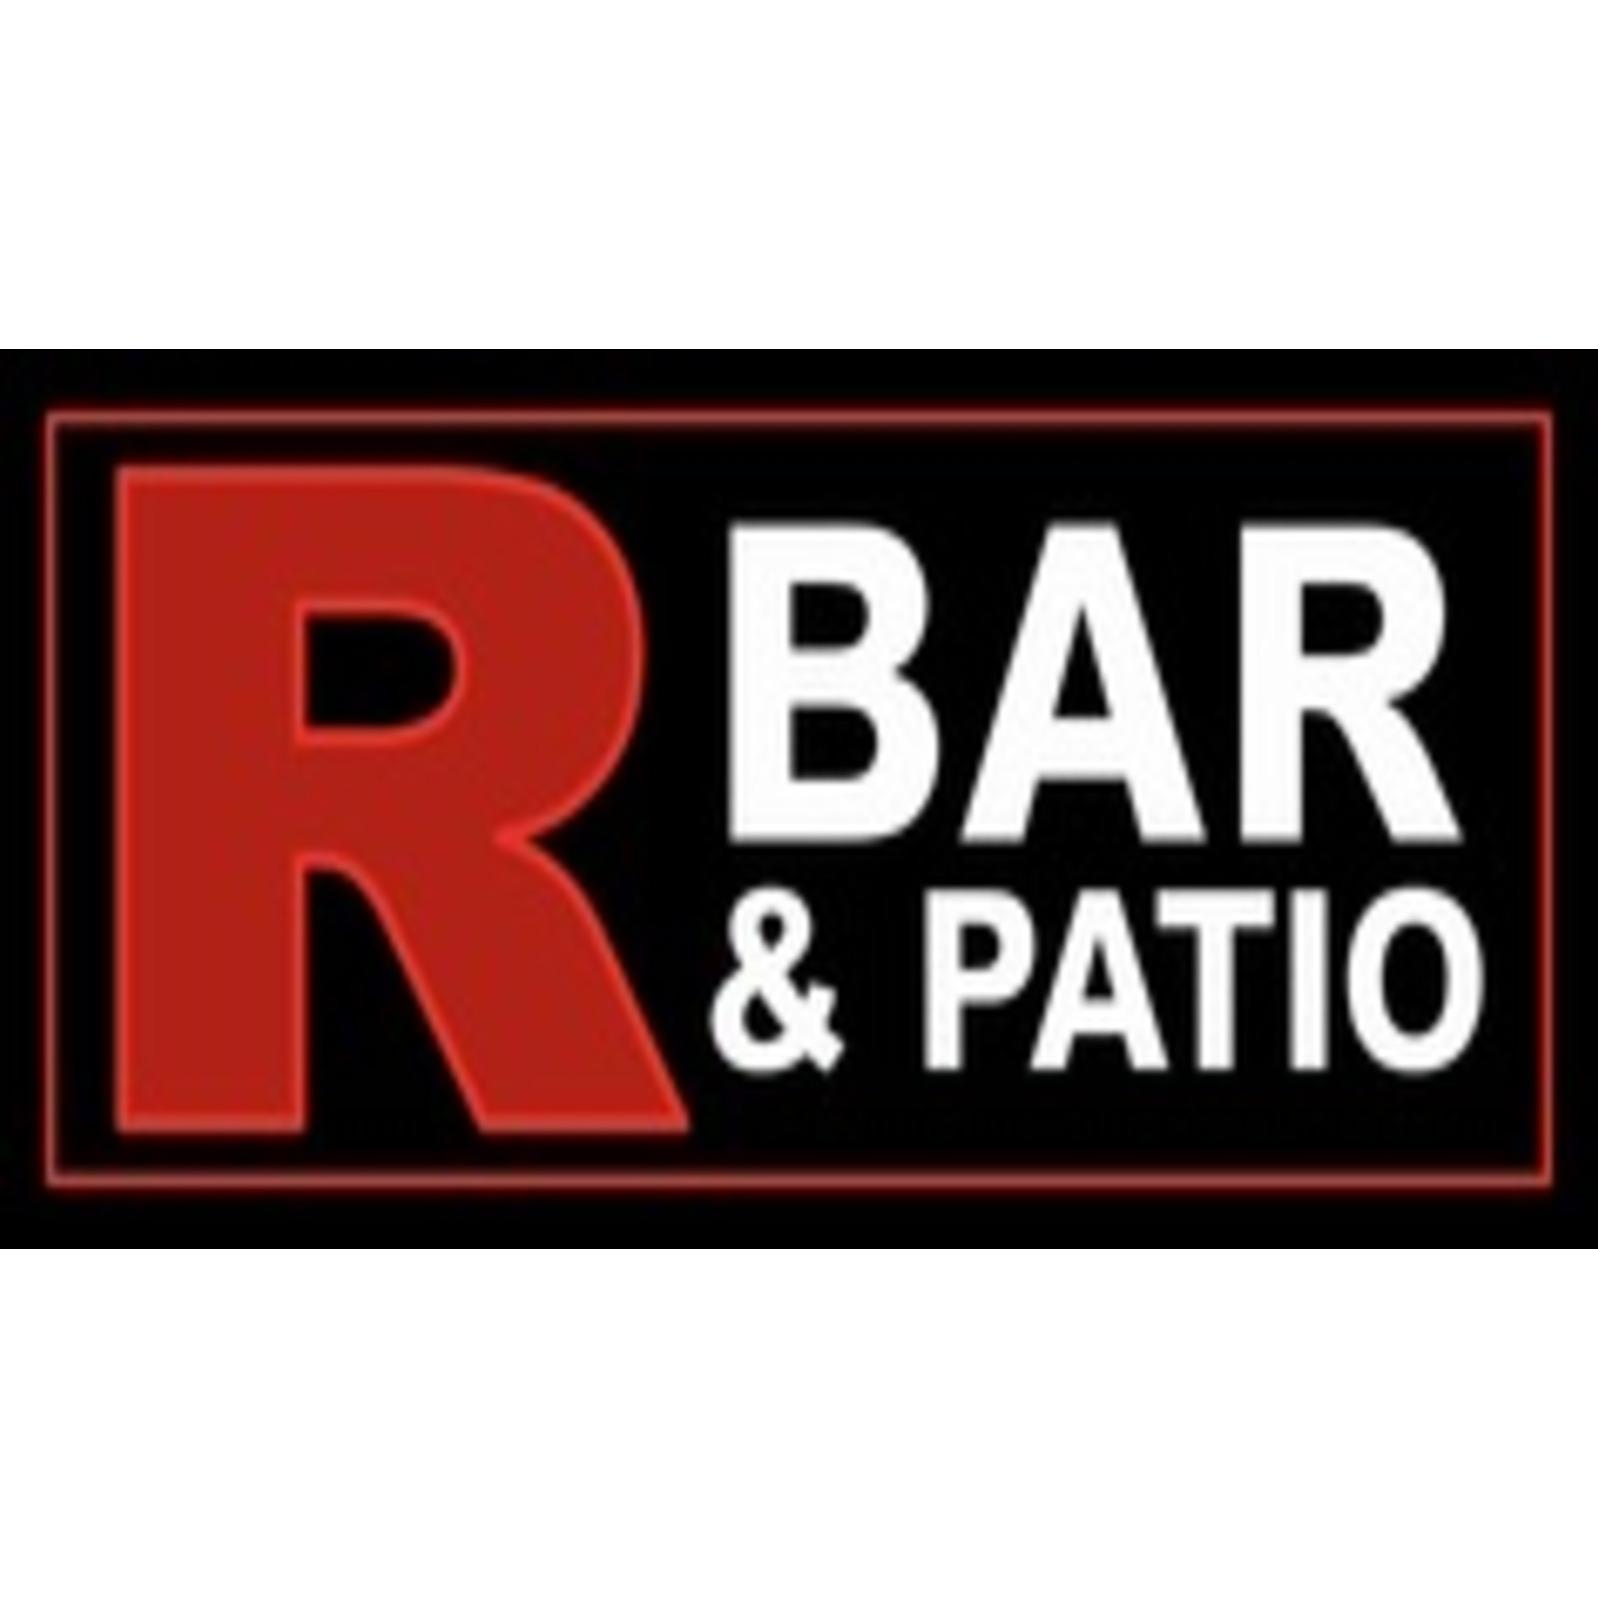 R Bar & Patio - Lawrence, KS 66044 - (785)856-6969 | ShowMeLocal.com